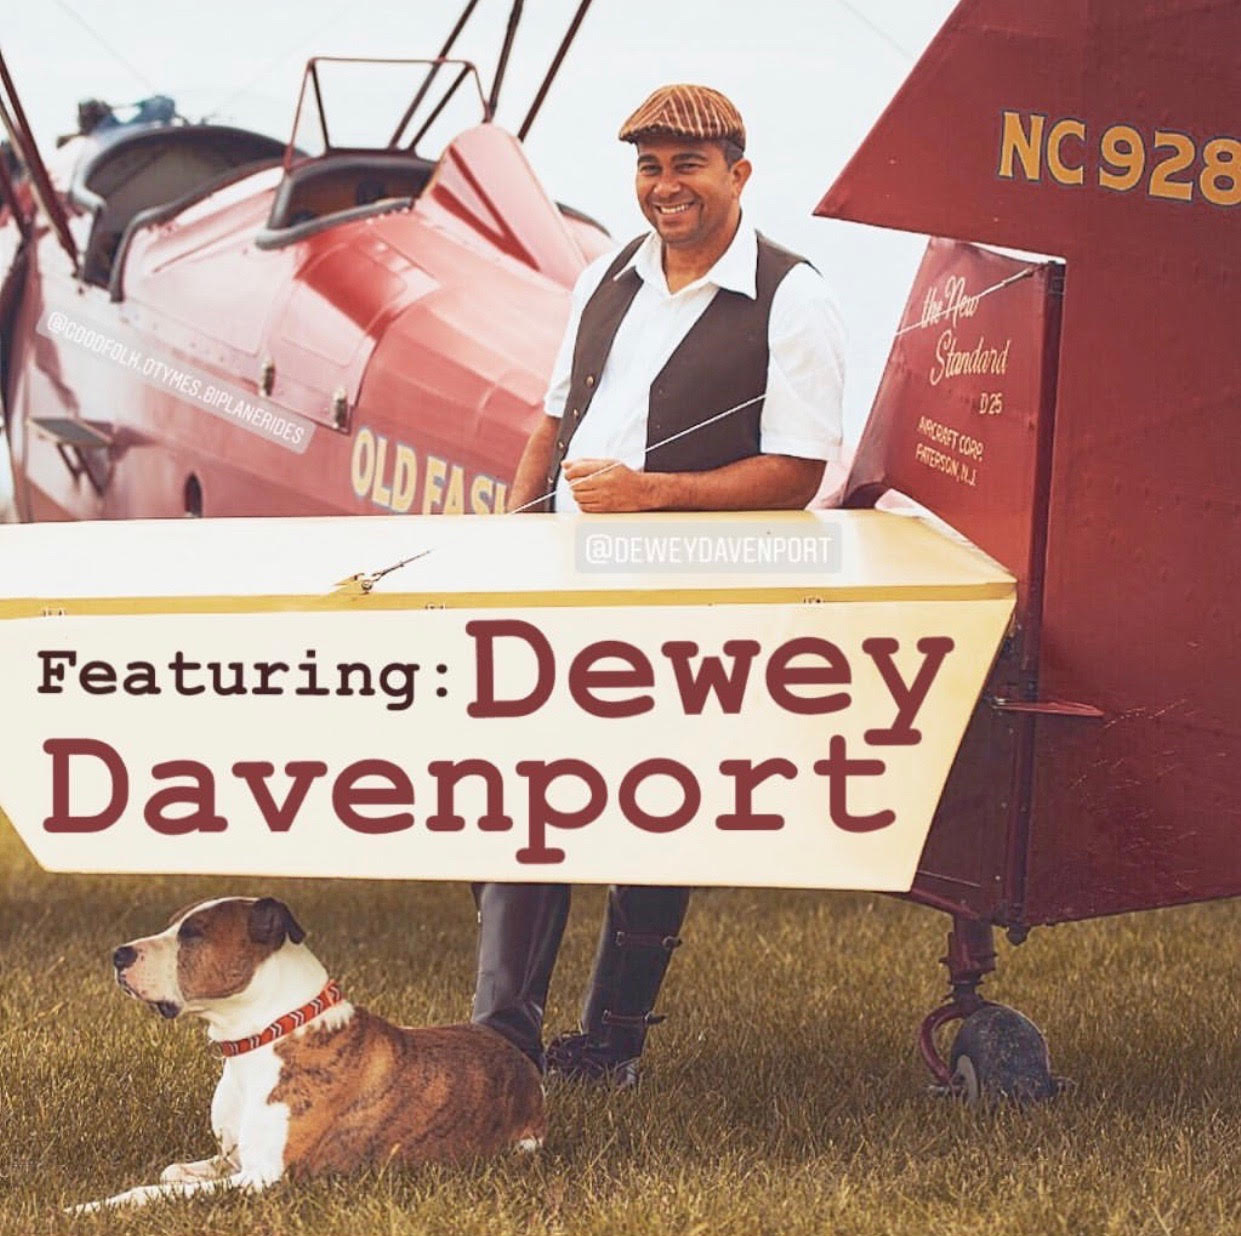 Season 3 Episode 3: Dewey Davenport, Modern Day Barnstormer  Dewey Davenport  He flies for a fractional jet company while mentoring and keeping the modern day barnstormer concept alive!